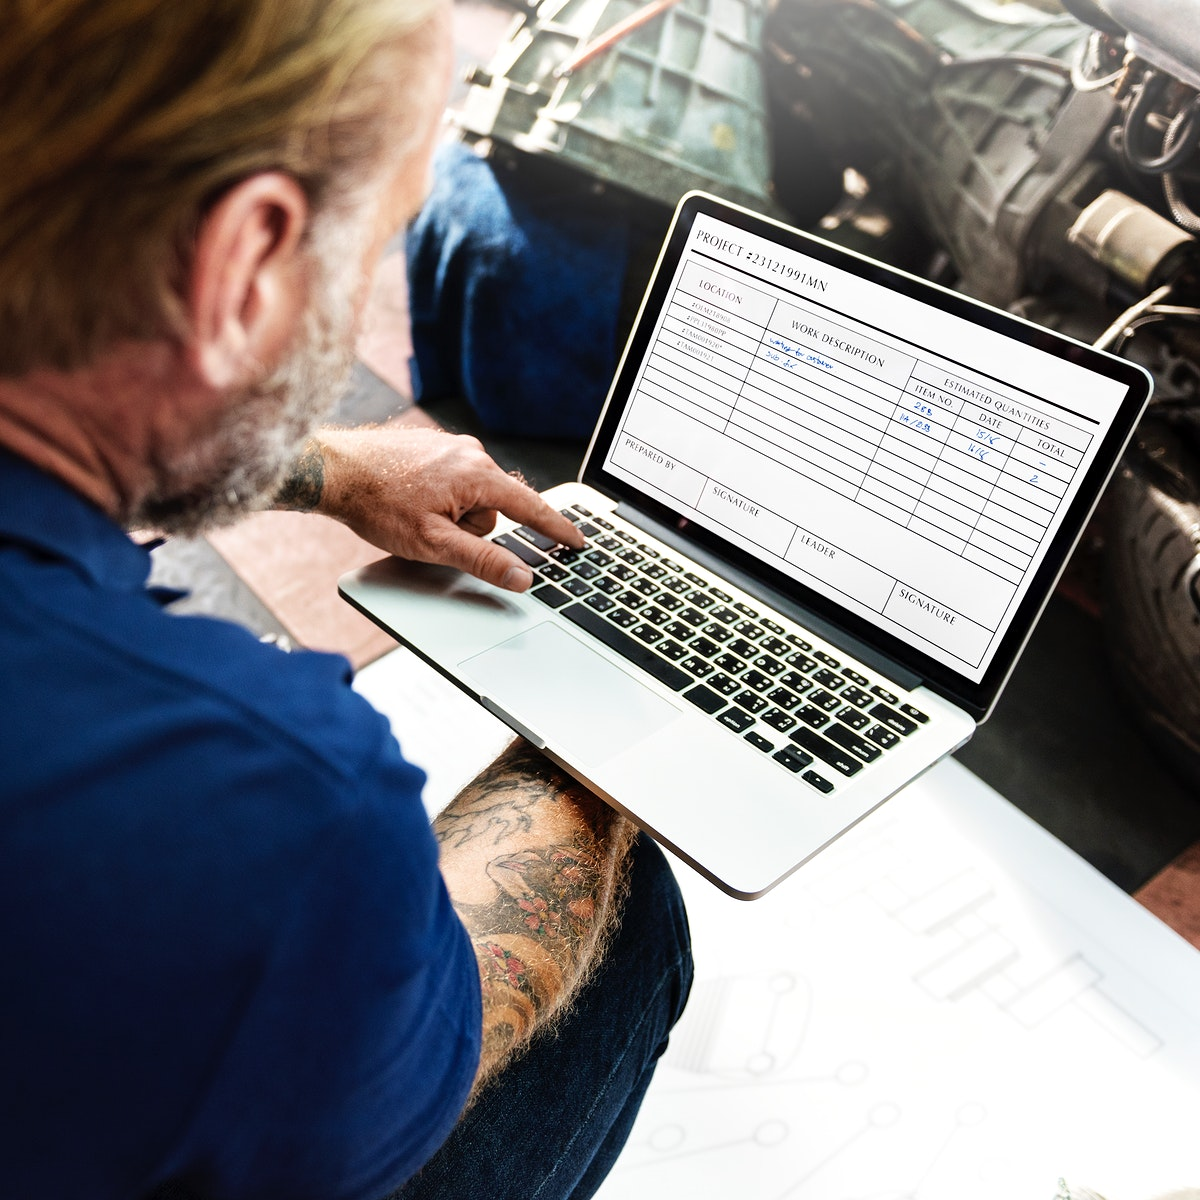 A mechanic working with his laptop